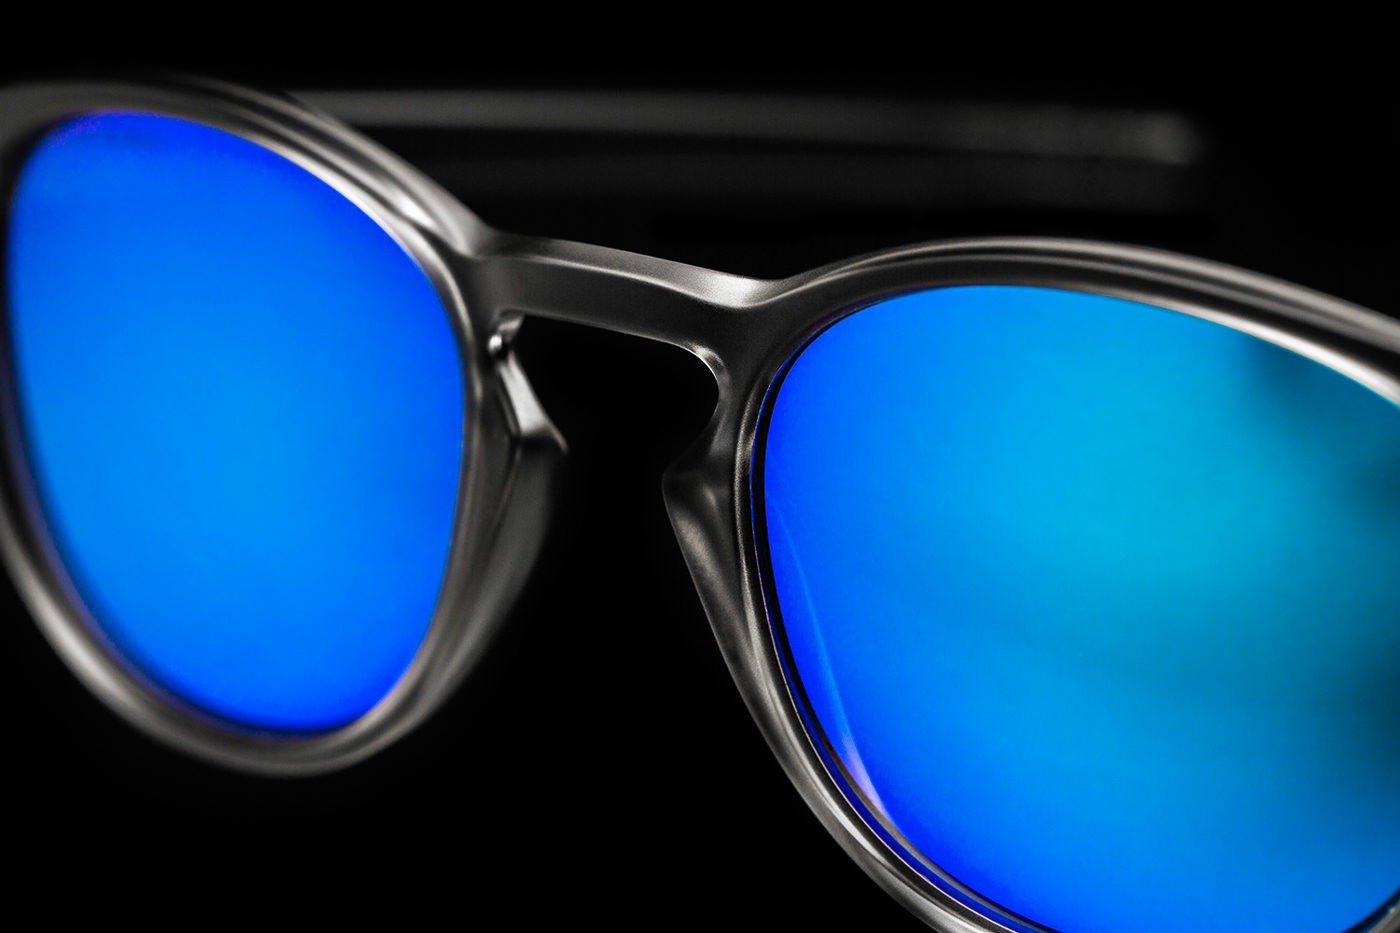 Close-up lunette Oakley teinte bleu sur noir